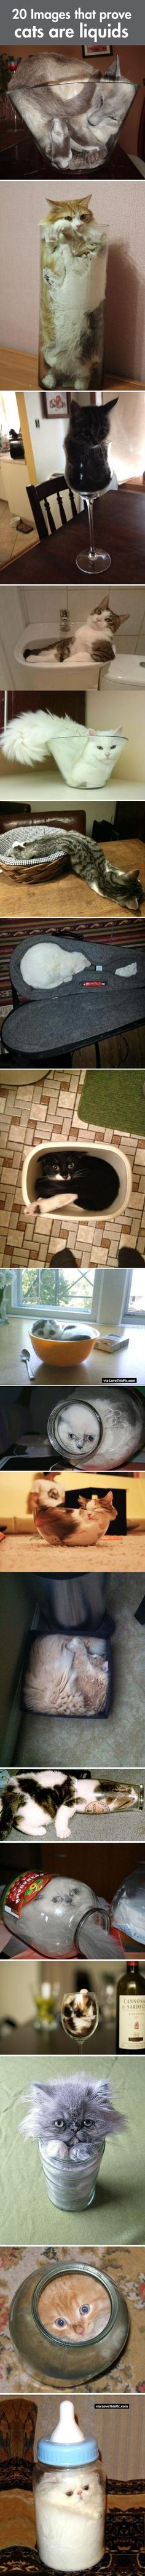 20 Images That Prove Cats Are Liquid cute animals cat cats adorable animal kittens pets kitten funny pictures funny animals funny cats